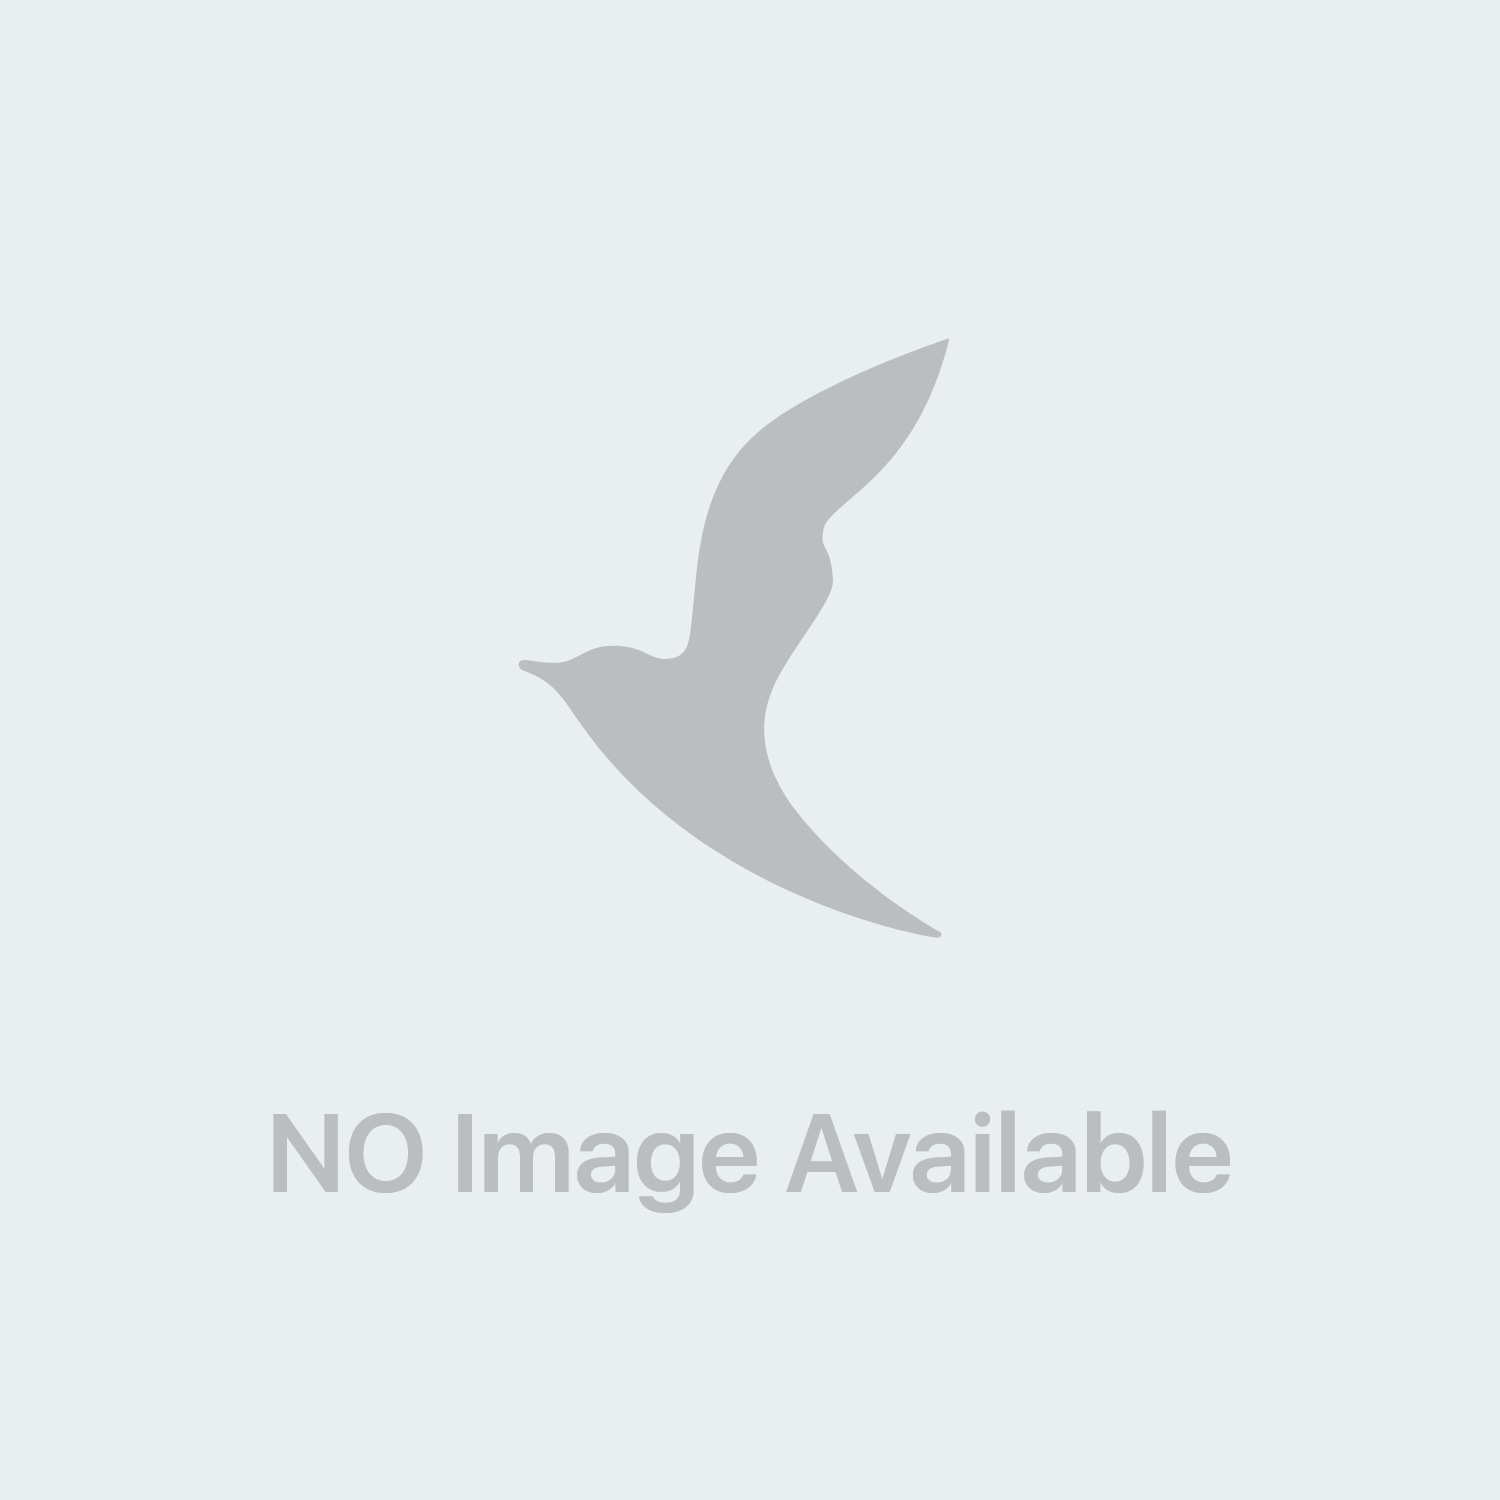 Tirecol Integratore Tiroide 30 Compresse